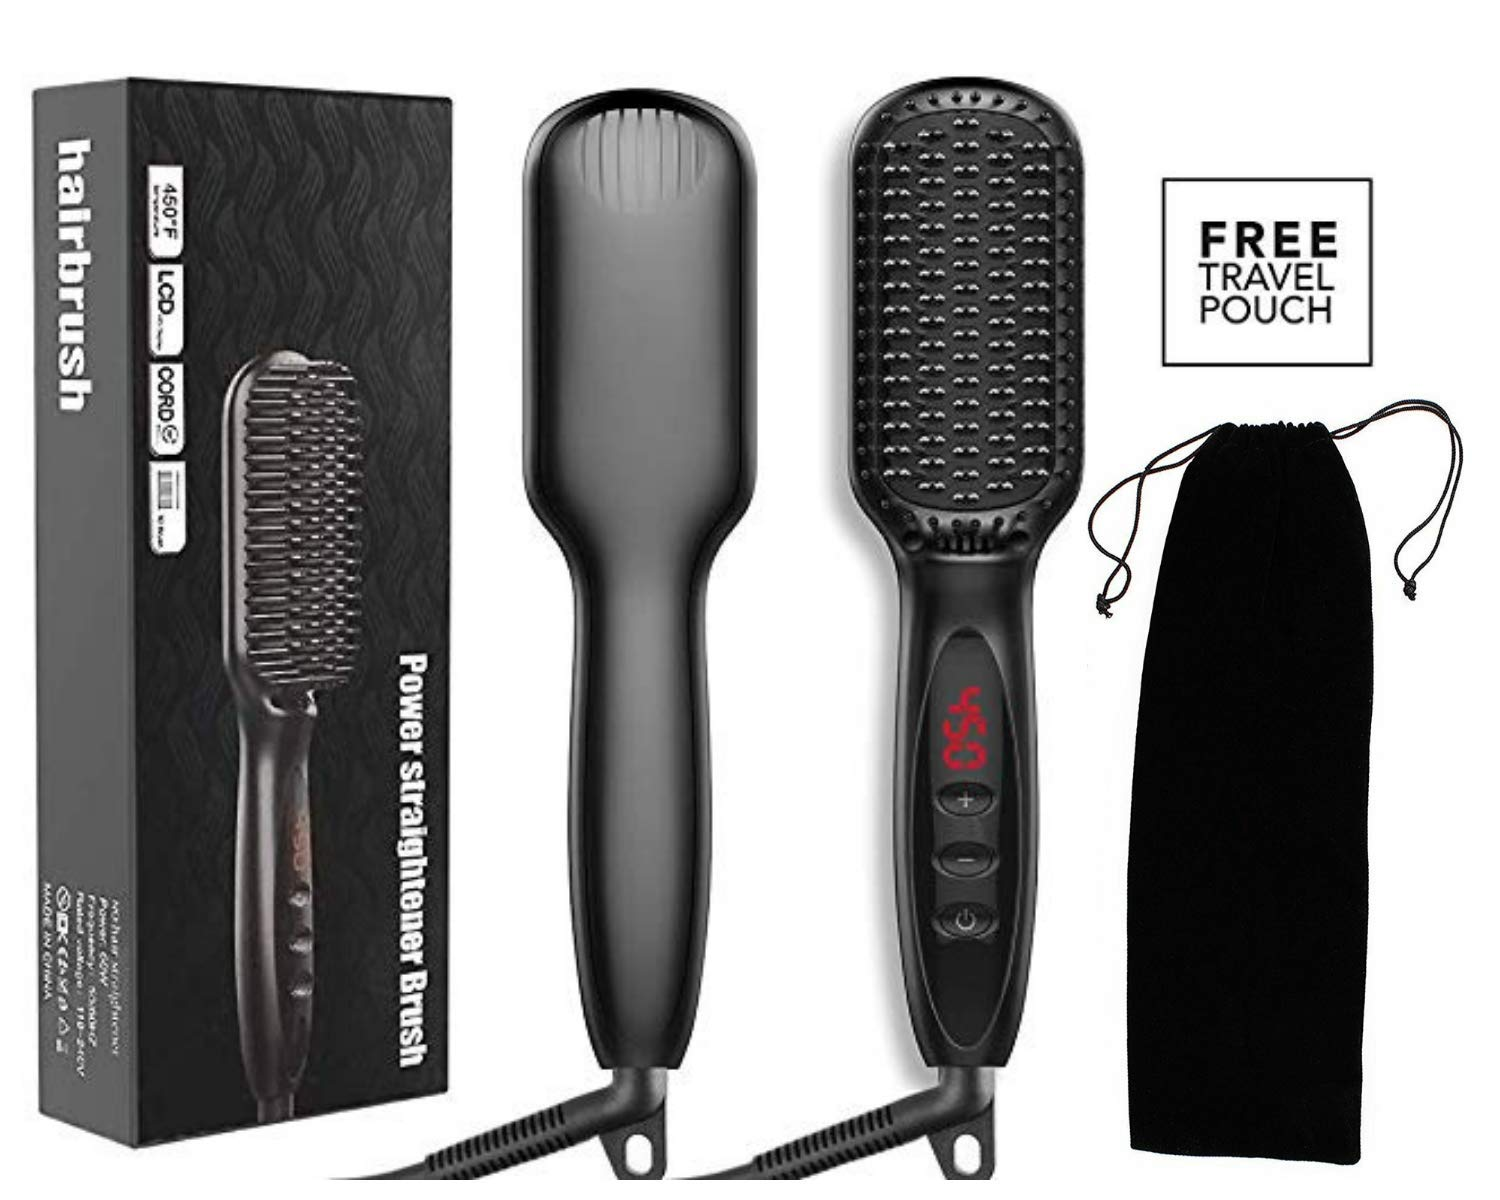 One Step Hair Dryer and Volumizer – iMethod 2-in-1 Ceramic Hot Air Brush Styler for Any Hair Types, Get Salon Blowouts at Home in Half the Time